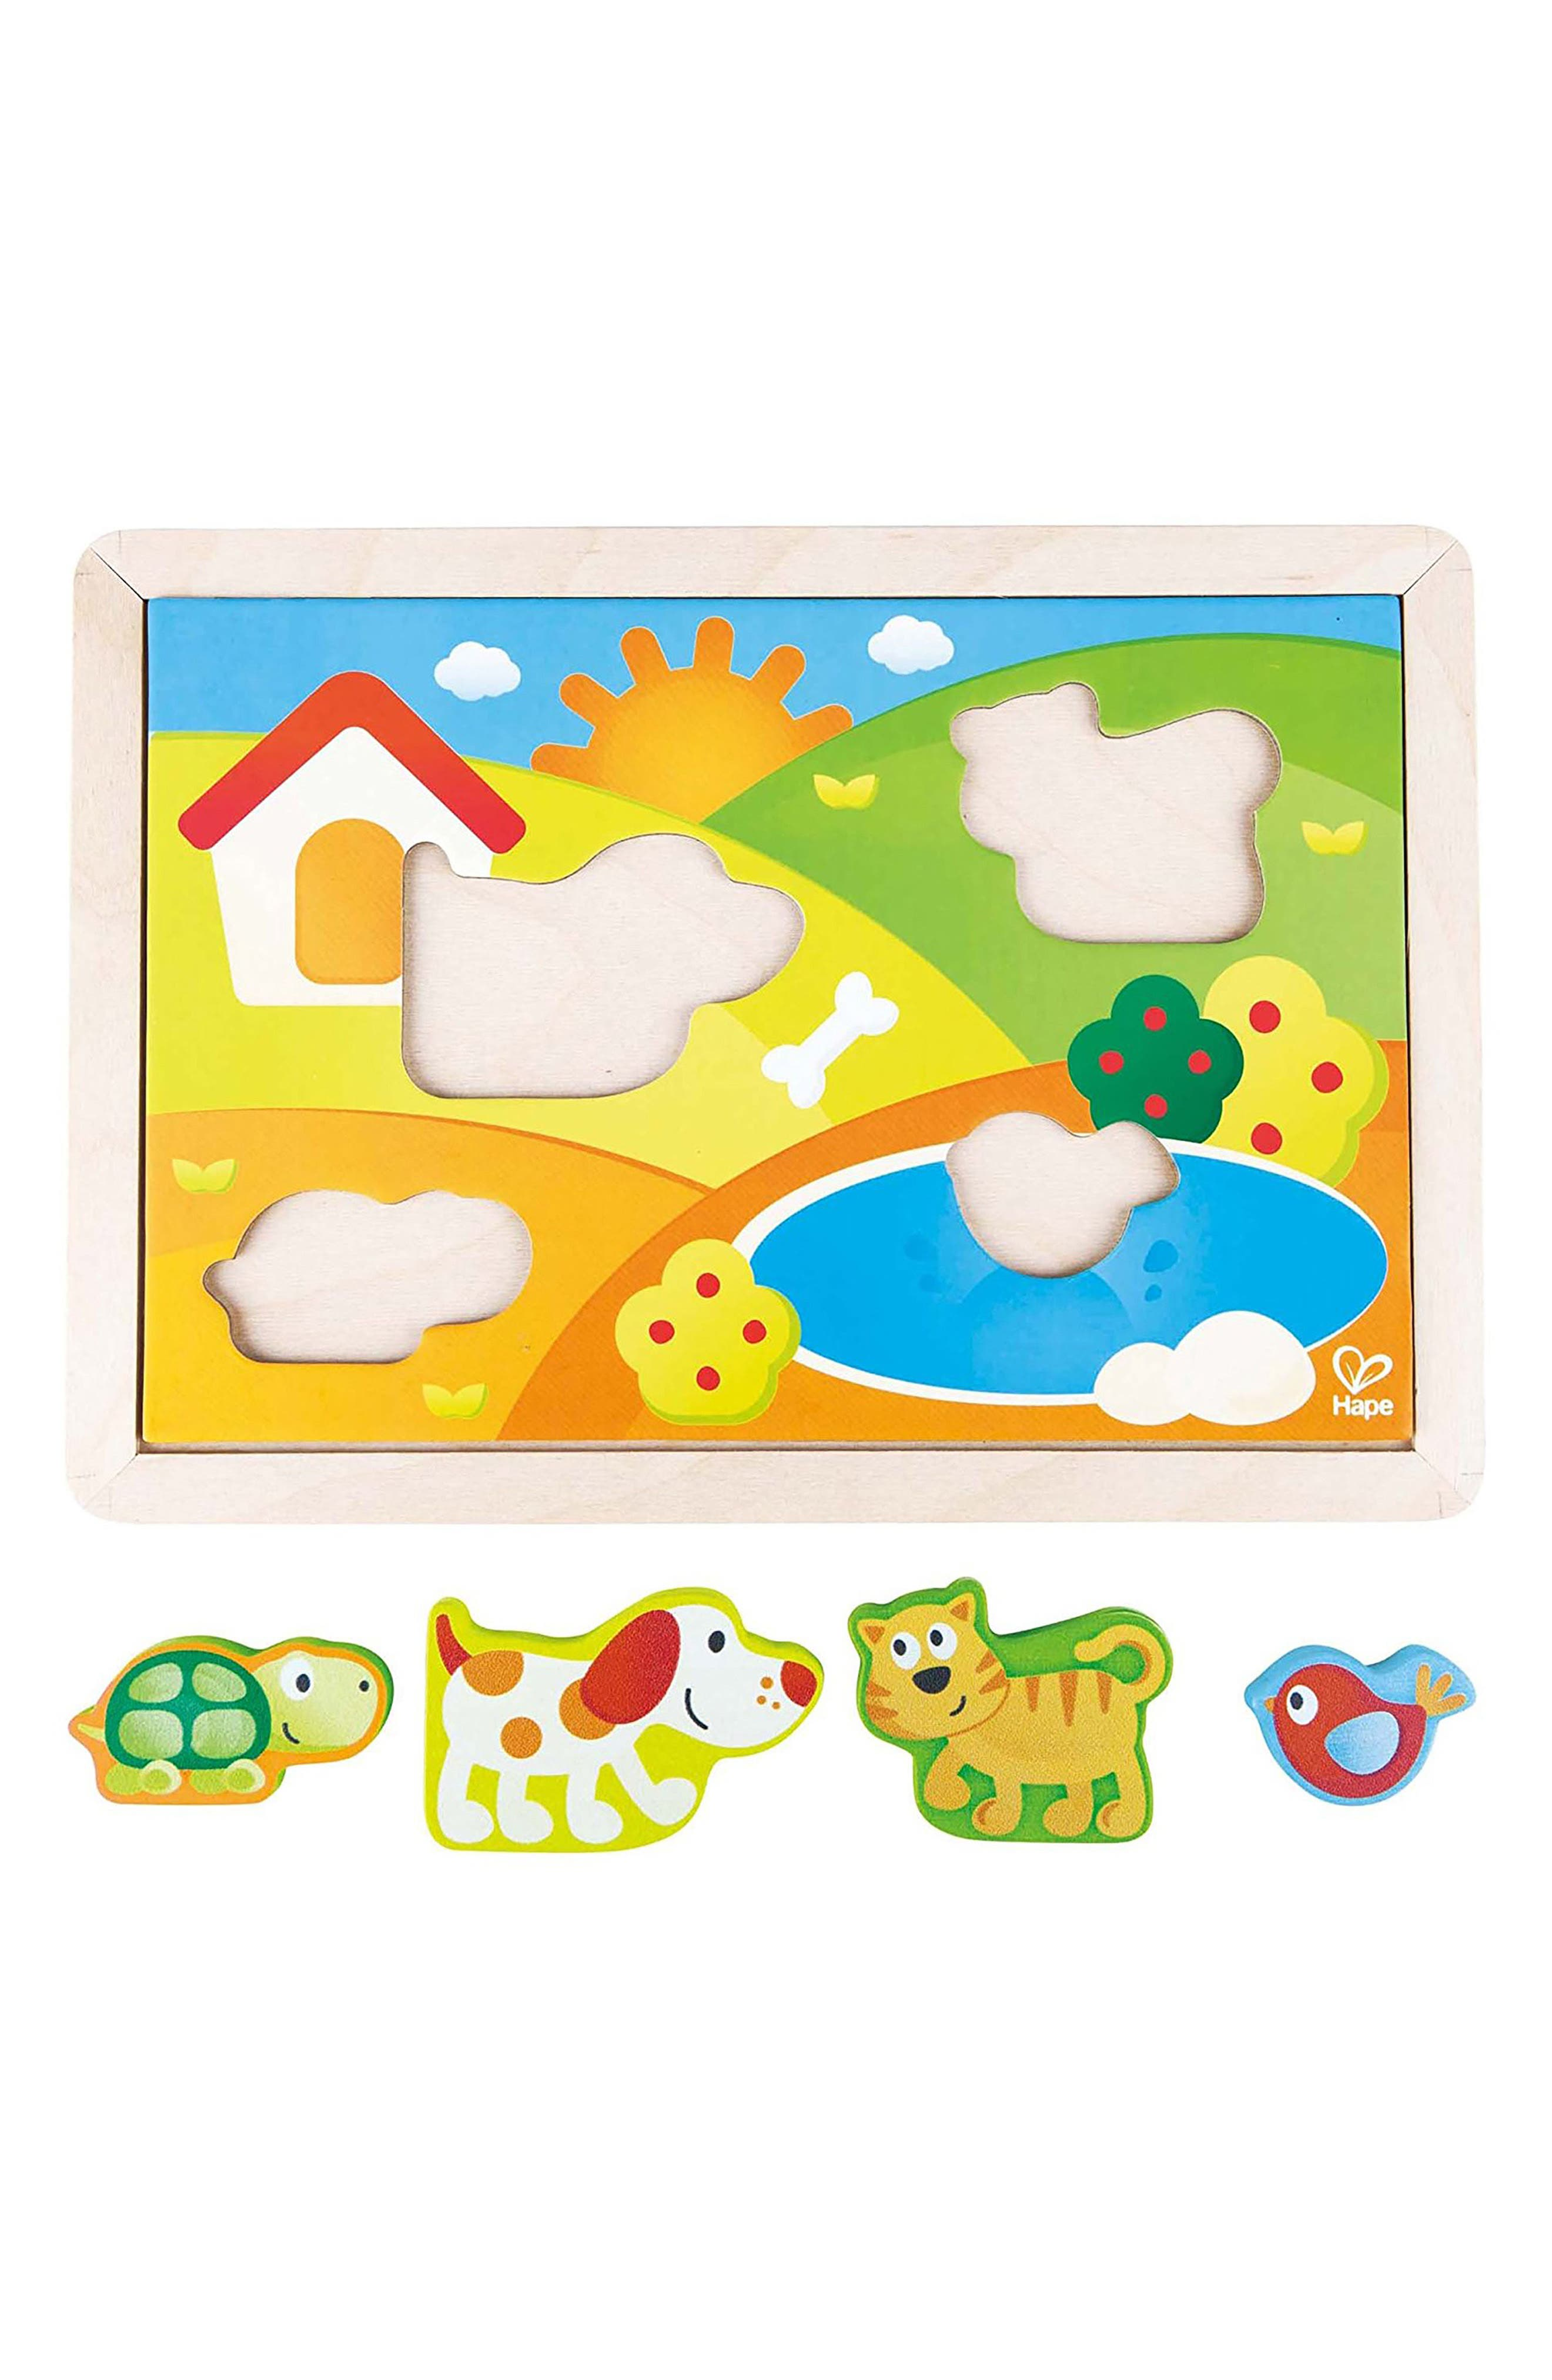 Sunny Valley 3-in-1 Puzzle,                             Alternate thumbnail 5, color,                             Multi